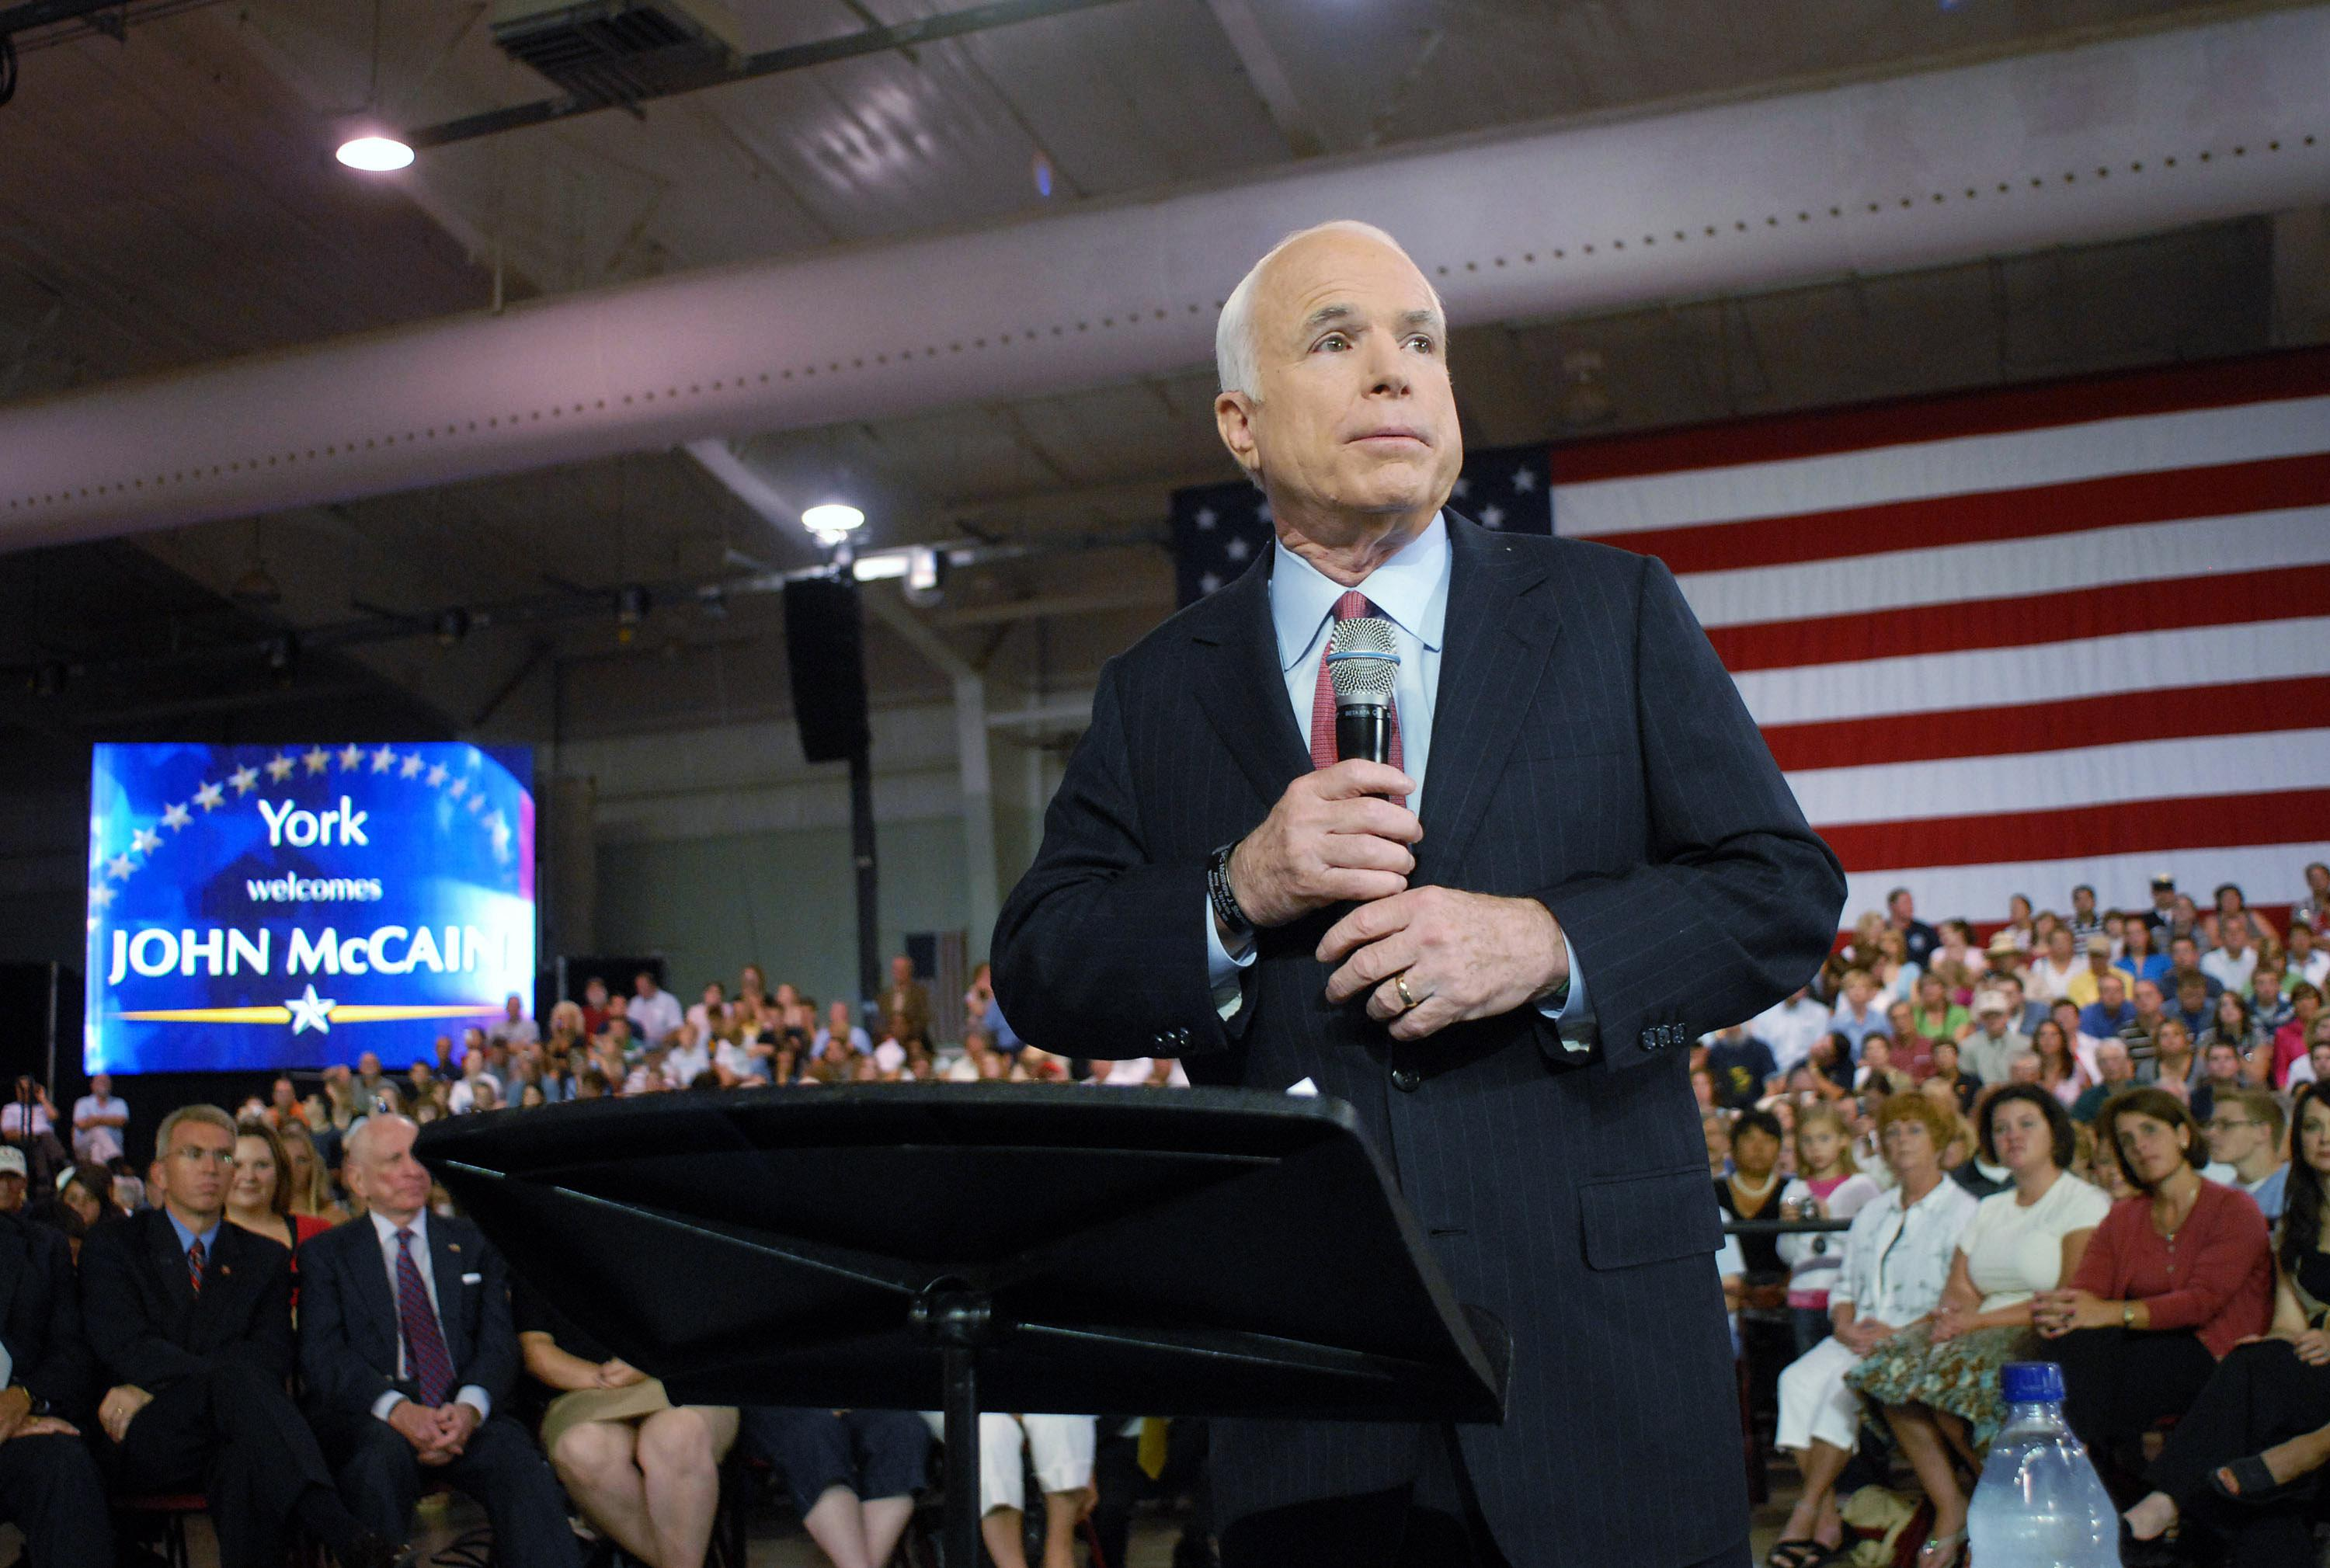 Sen. John McCain at a podium in front of a crowd and an American flag.